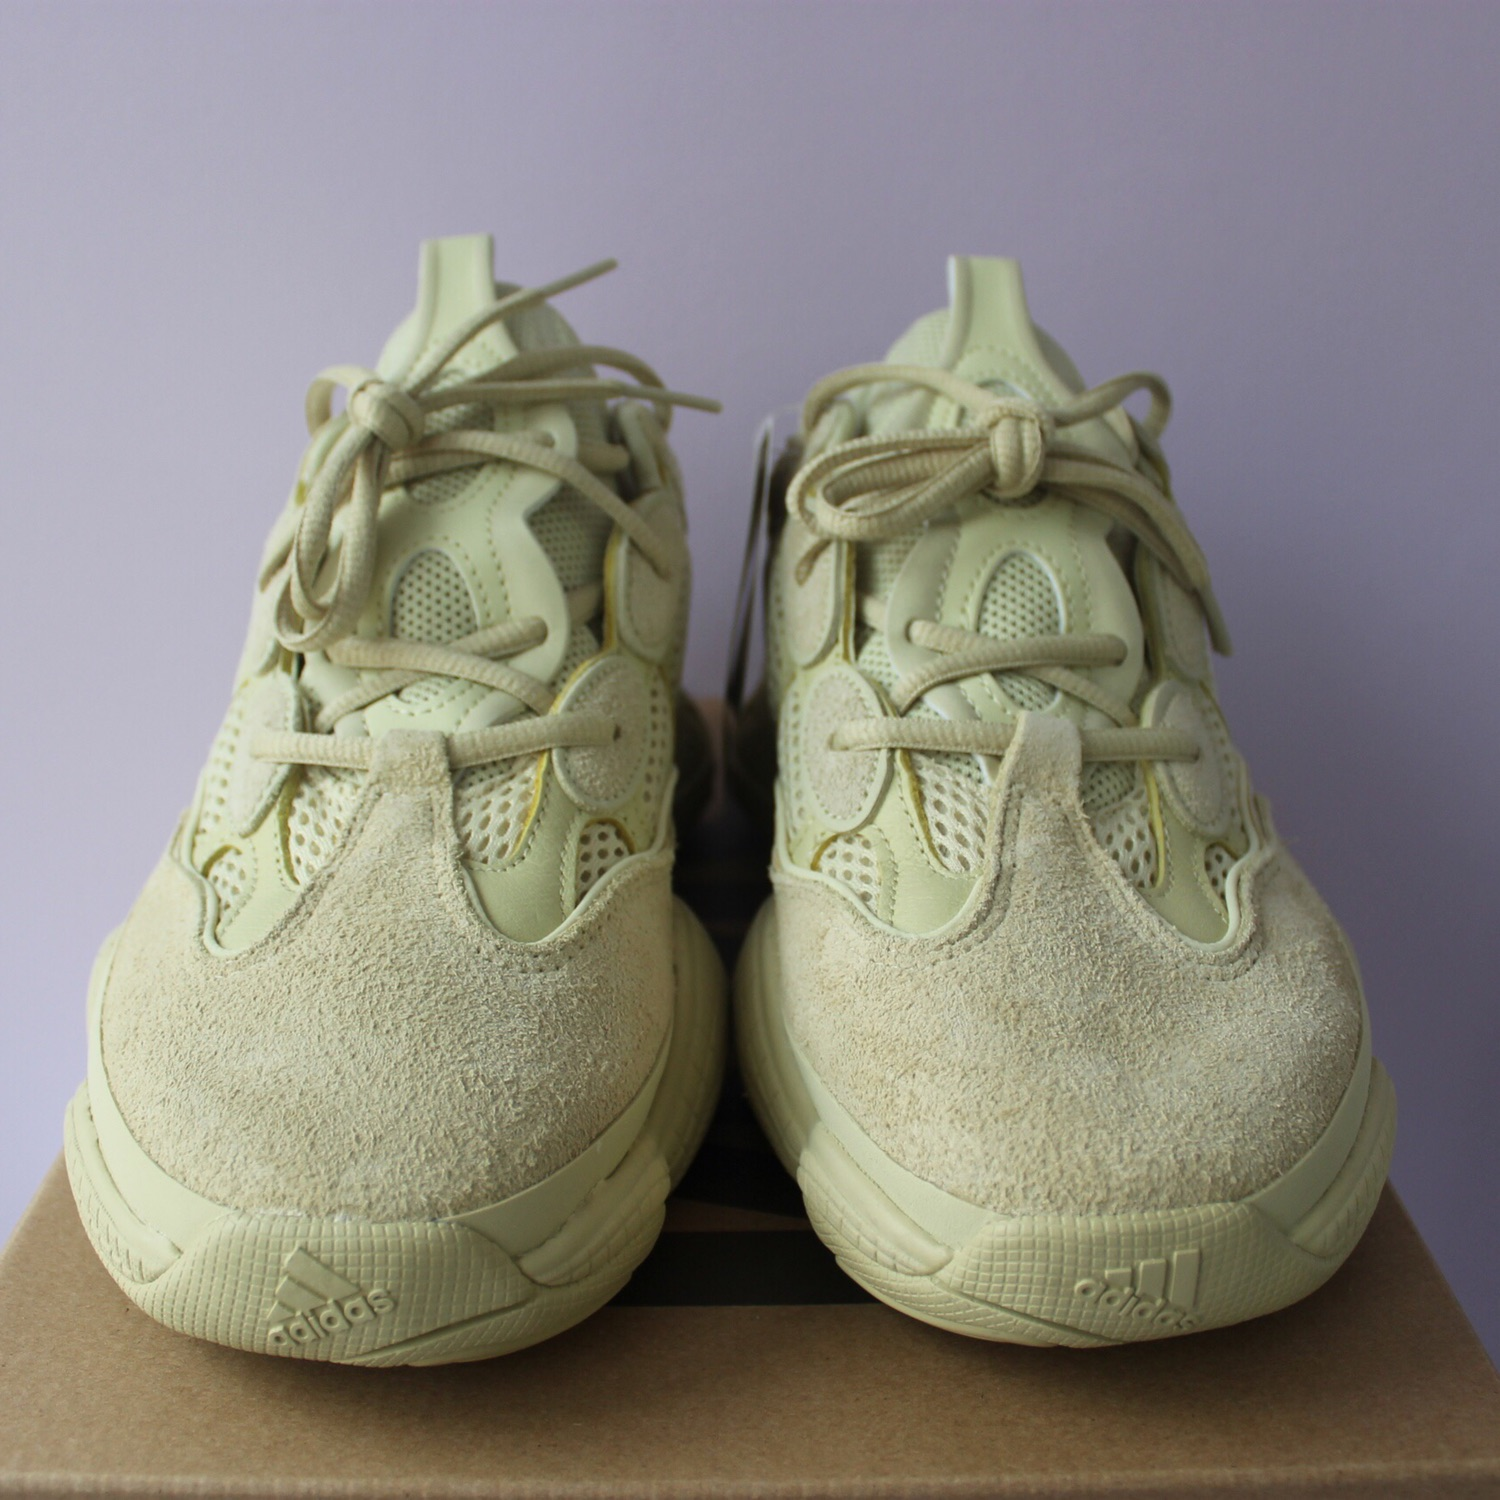 premium selection baf22 3c457 Adidas X Kanye West Yeezy 500 Supermoon Yellow